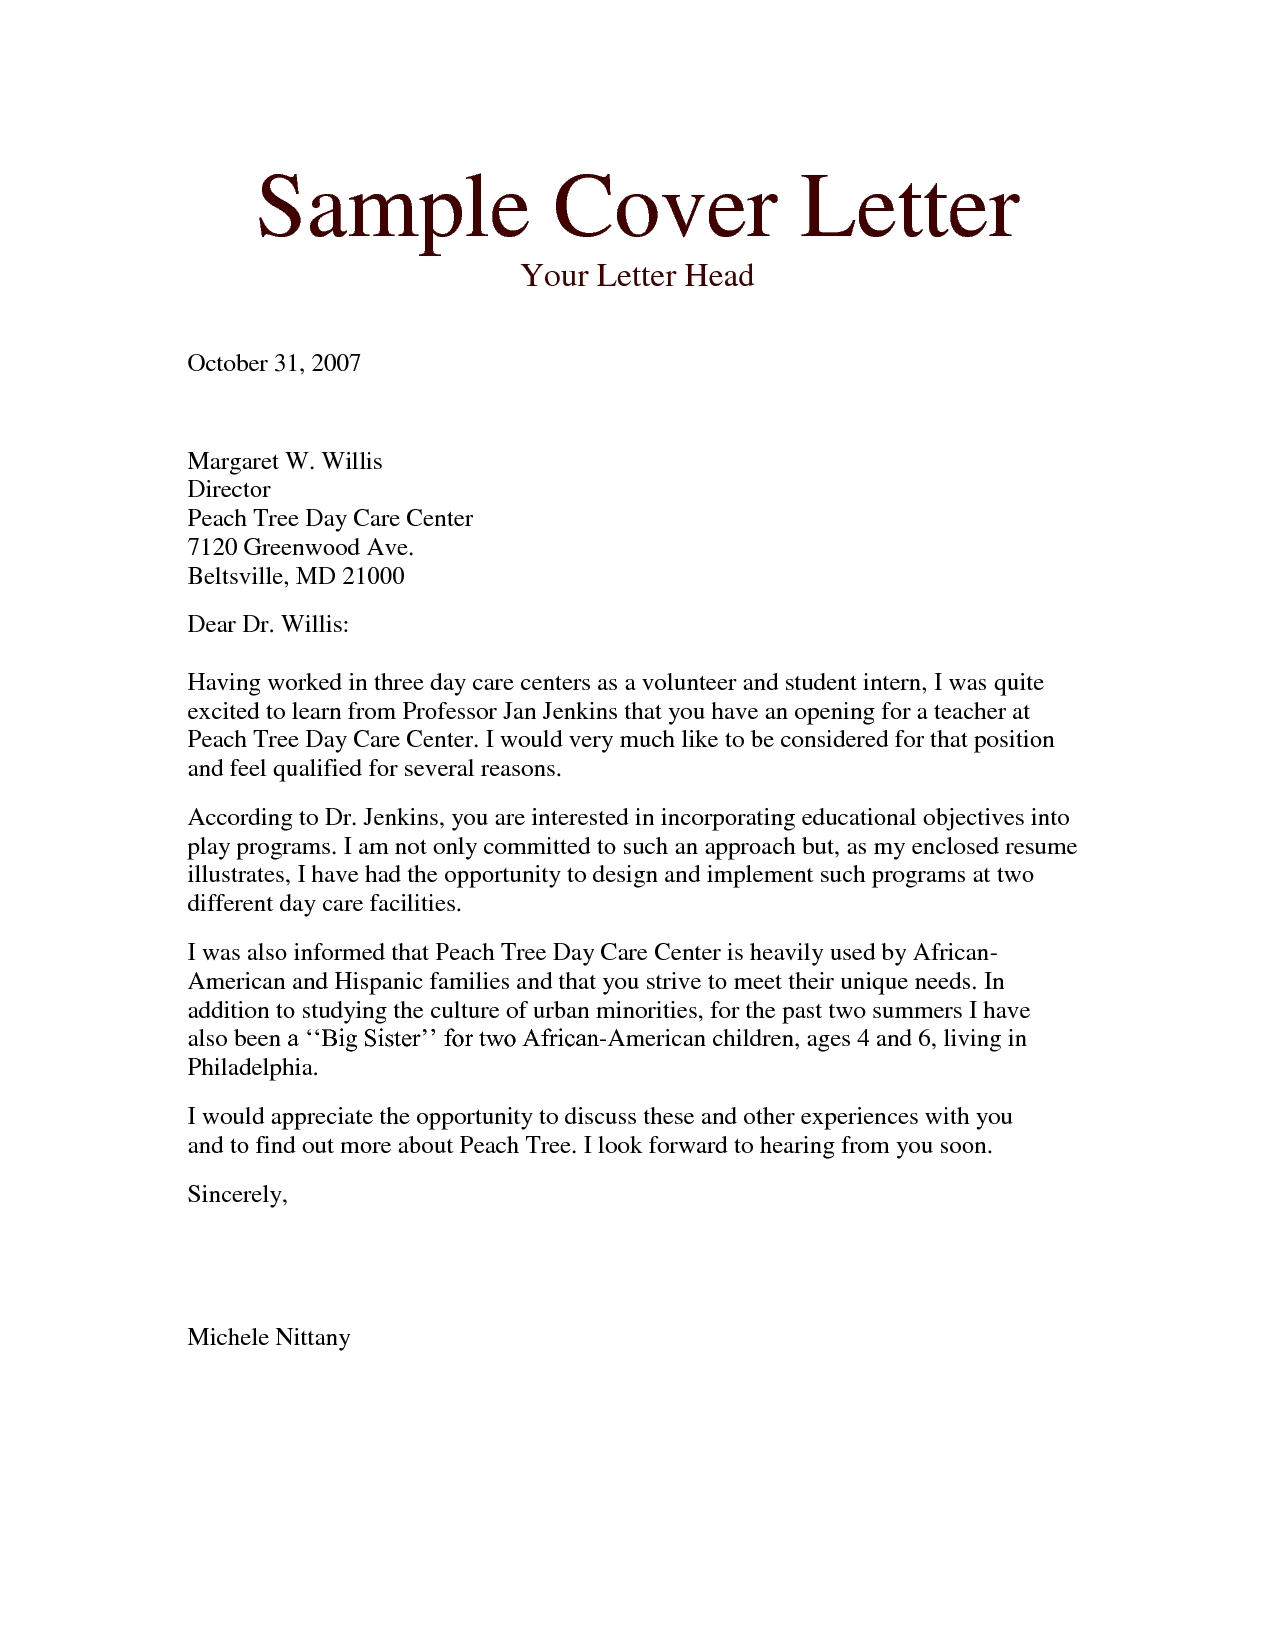 d2c4c4f8047e0dd12413dbb20ebf2c7d Cover Letter Template Ymca on just basic, free pdf, google docs, microsoft office, sample email, to write,